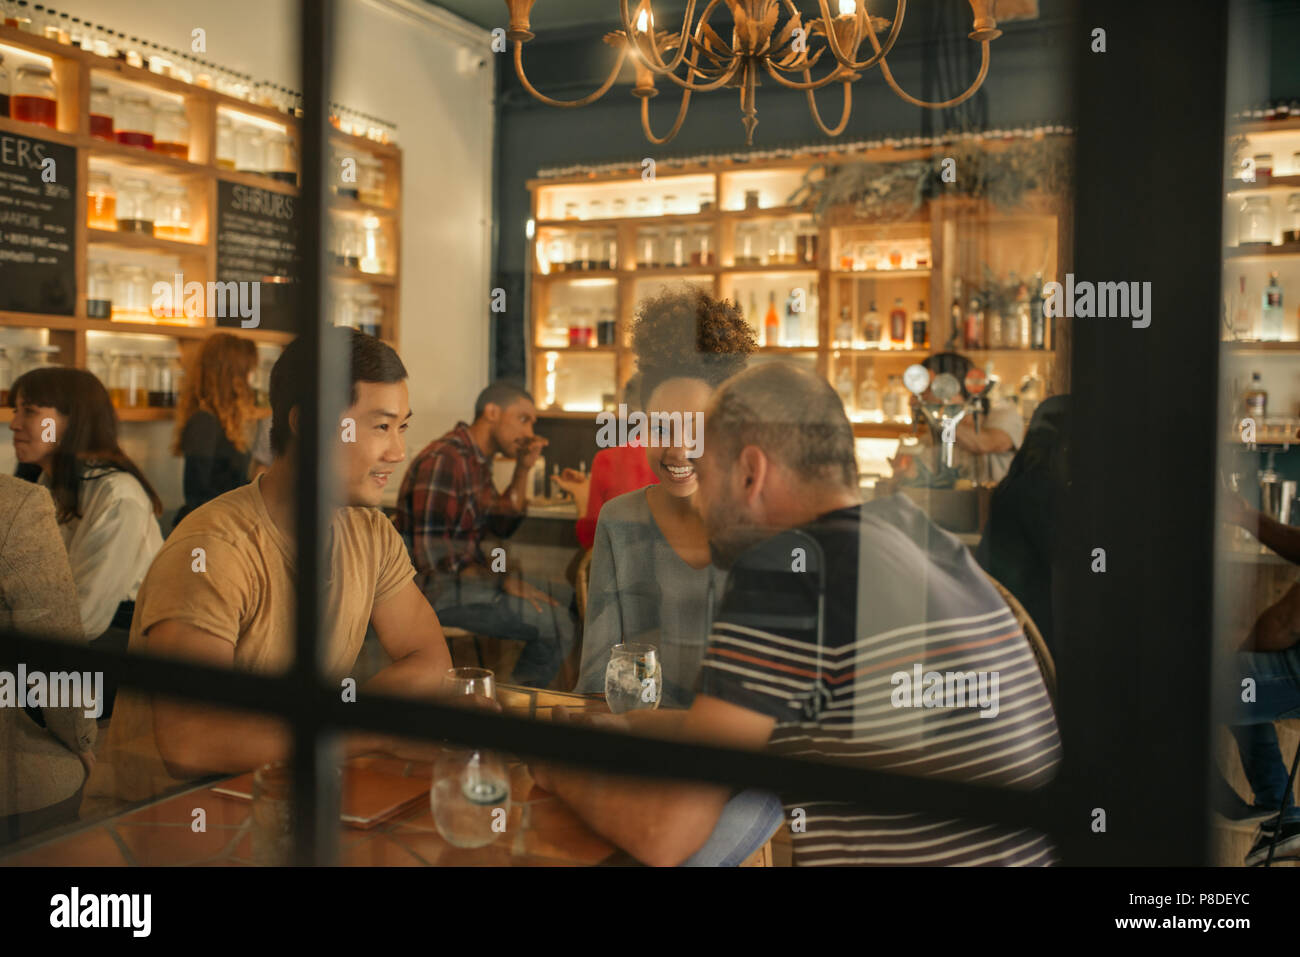 Smiling young friends sitting in a bar boissons ayant réuni Photo Stock